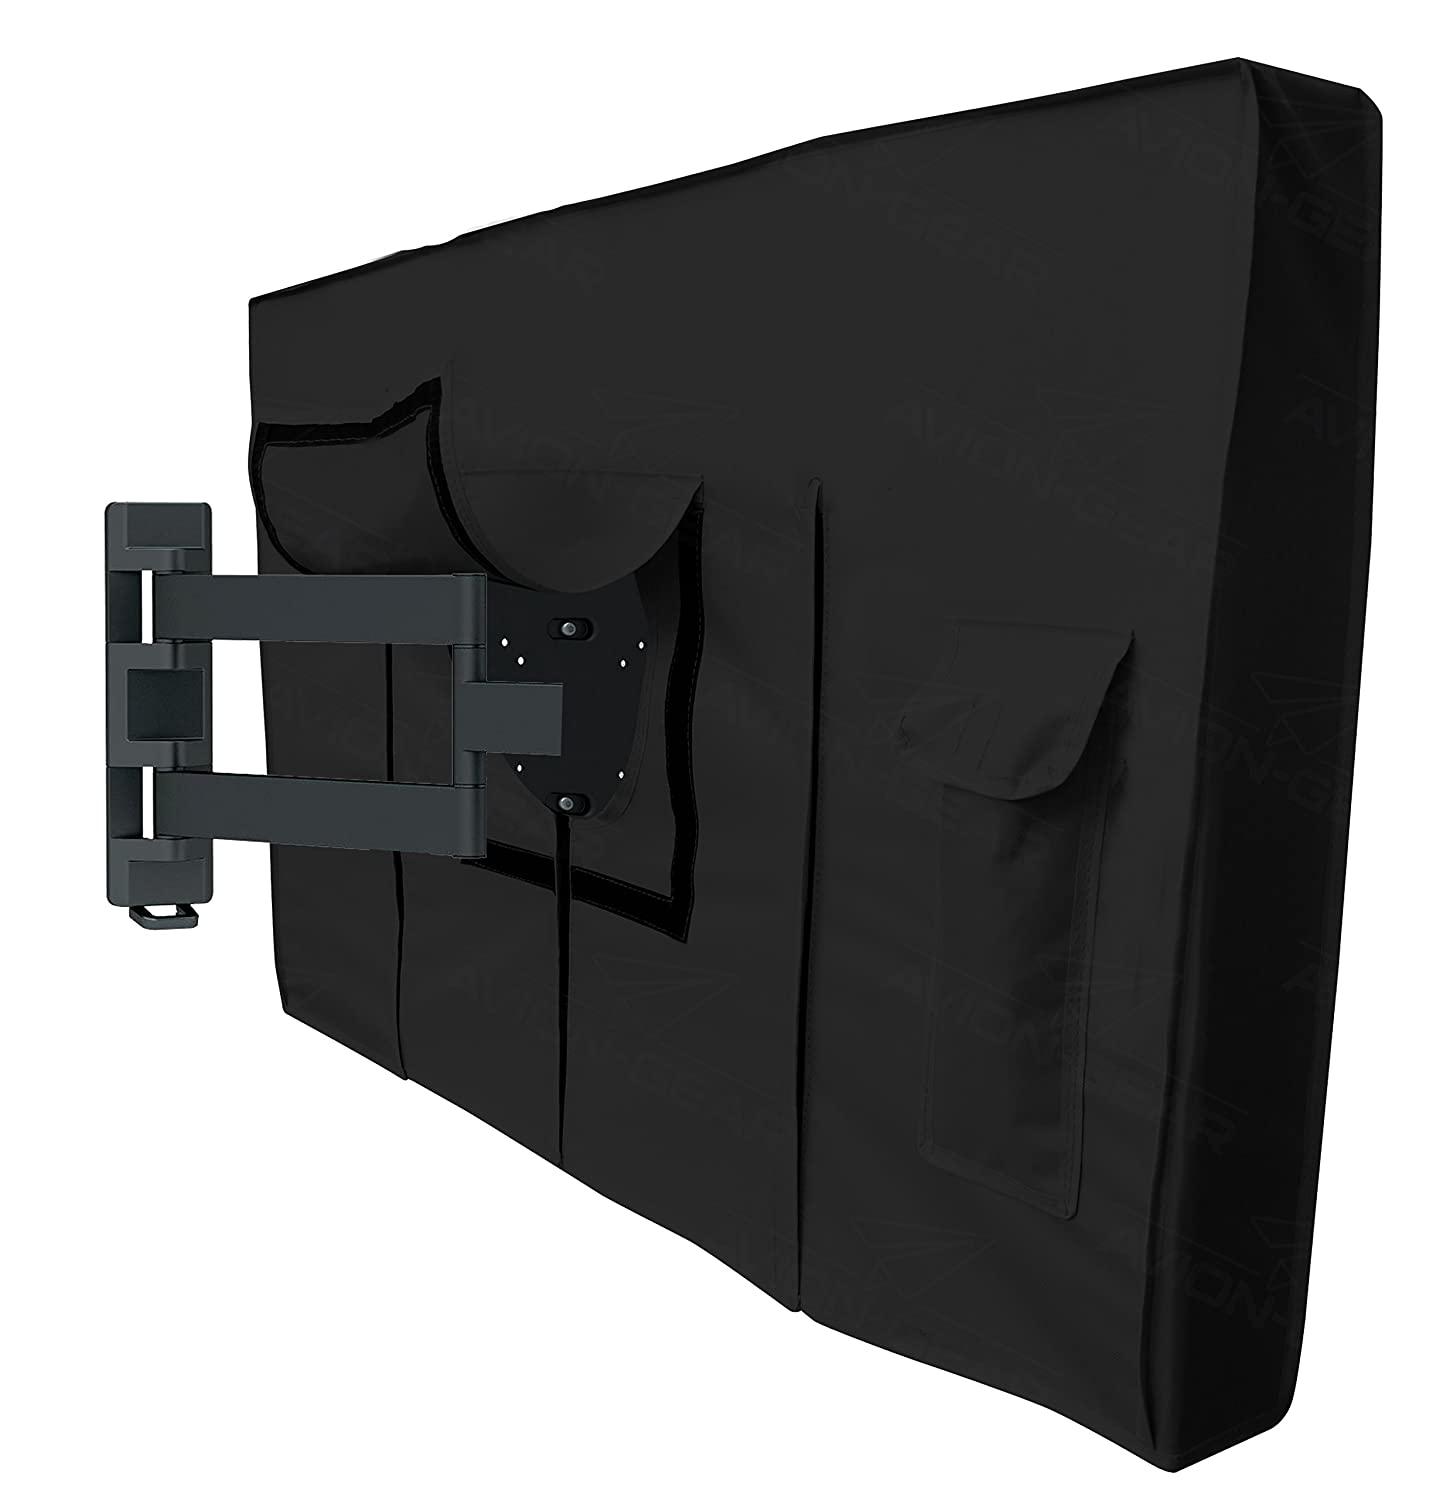 Plasma TV Screens Avion Gear Outdoor TV Cover Black Built in Fully Covered Bottom /& Remote Storage 55 58 Weatherproof Universal Protector for LED LCD